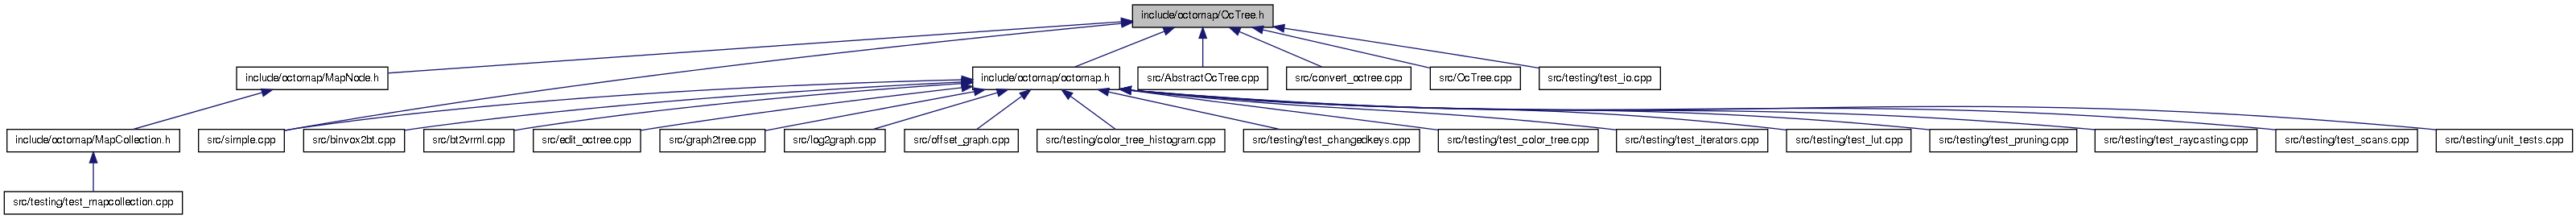 octomap: include/octomap/OcTree h File Reference